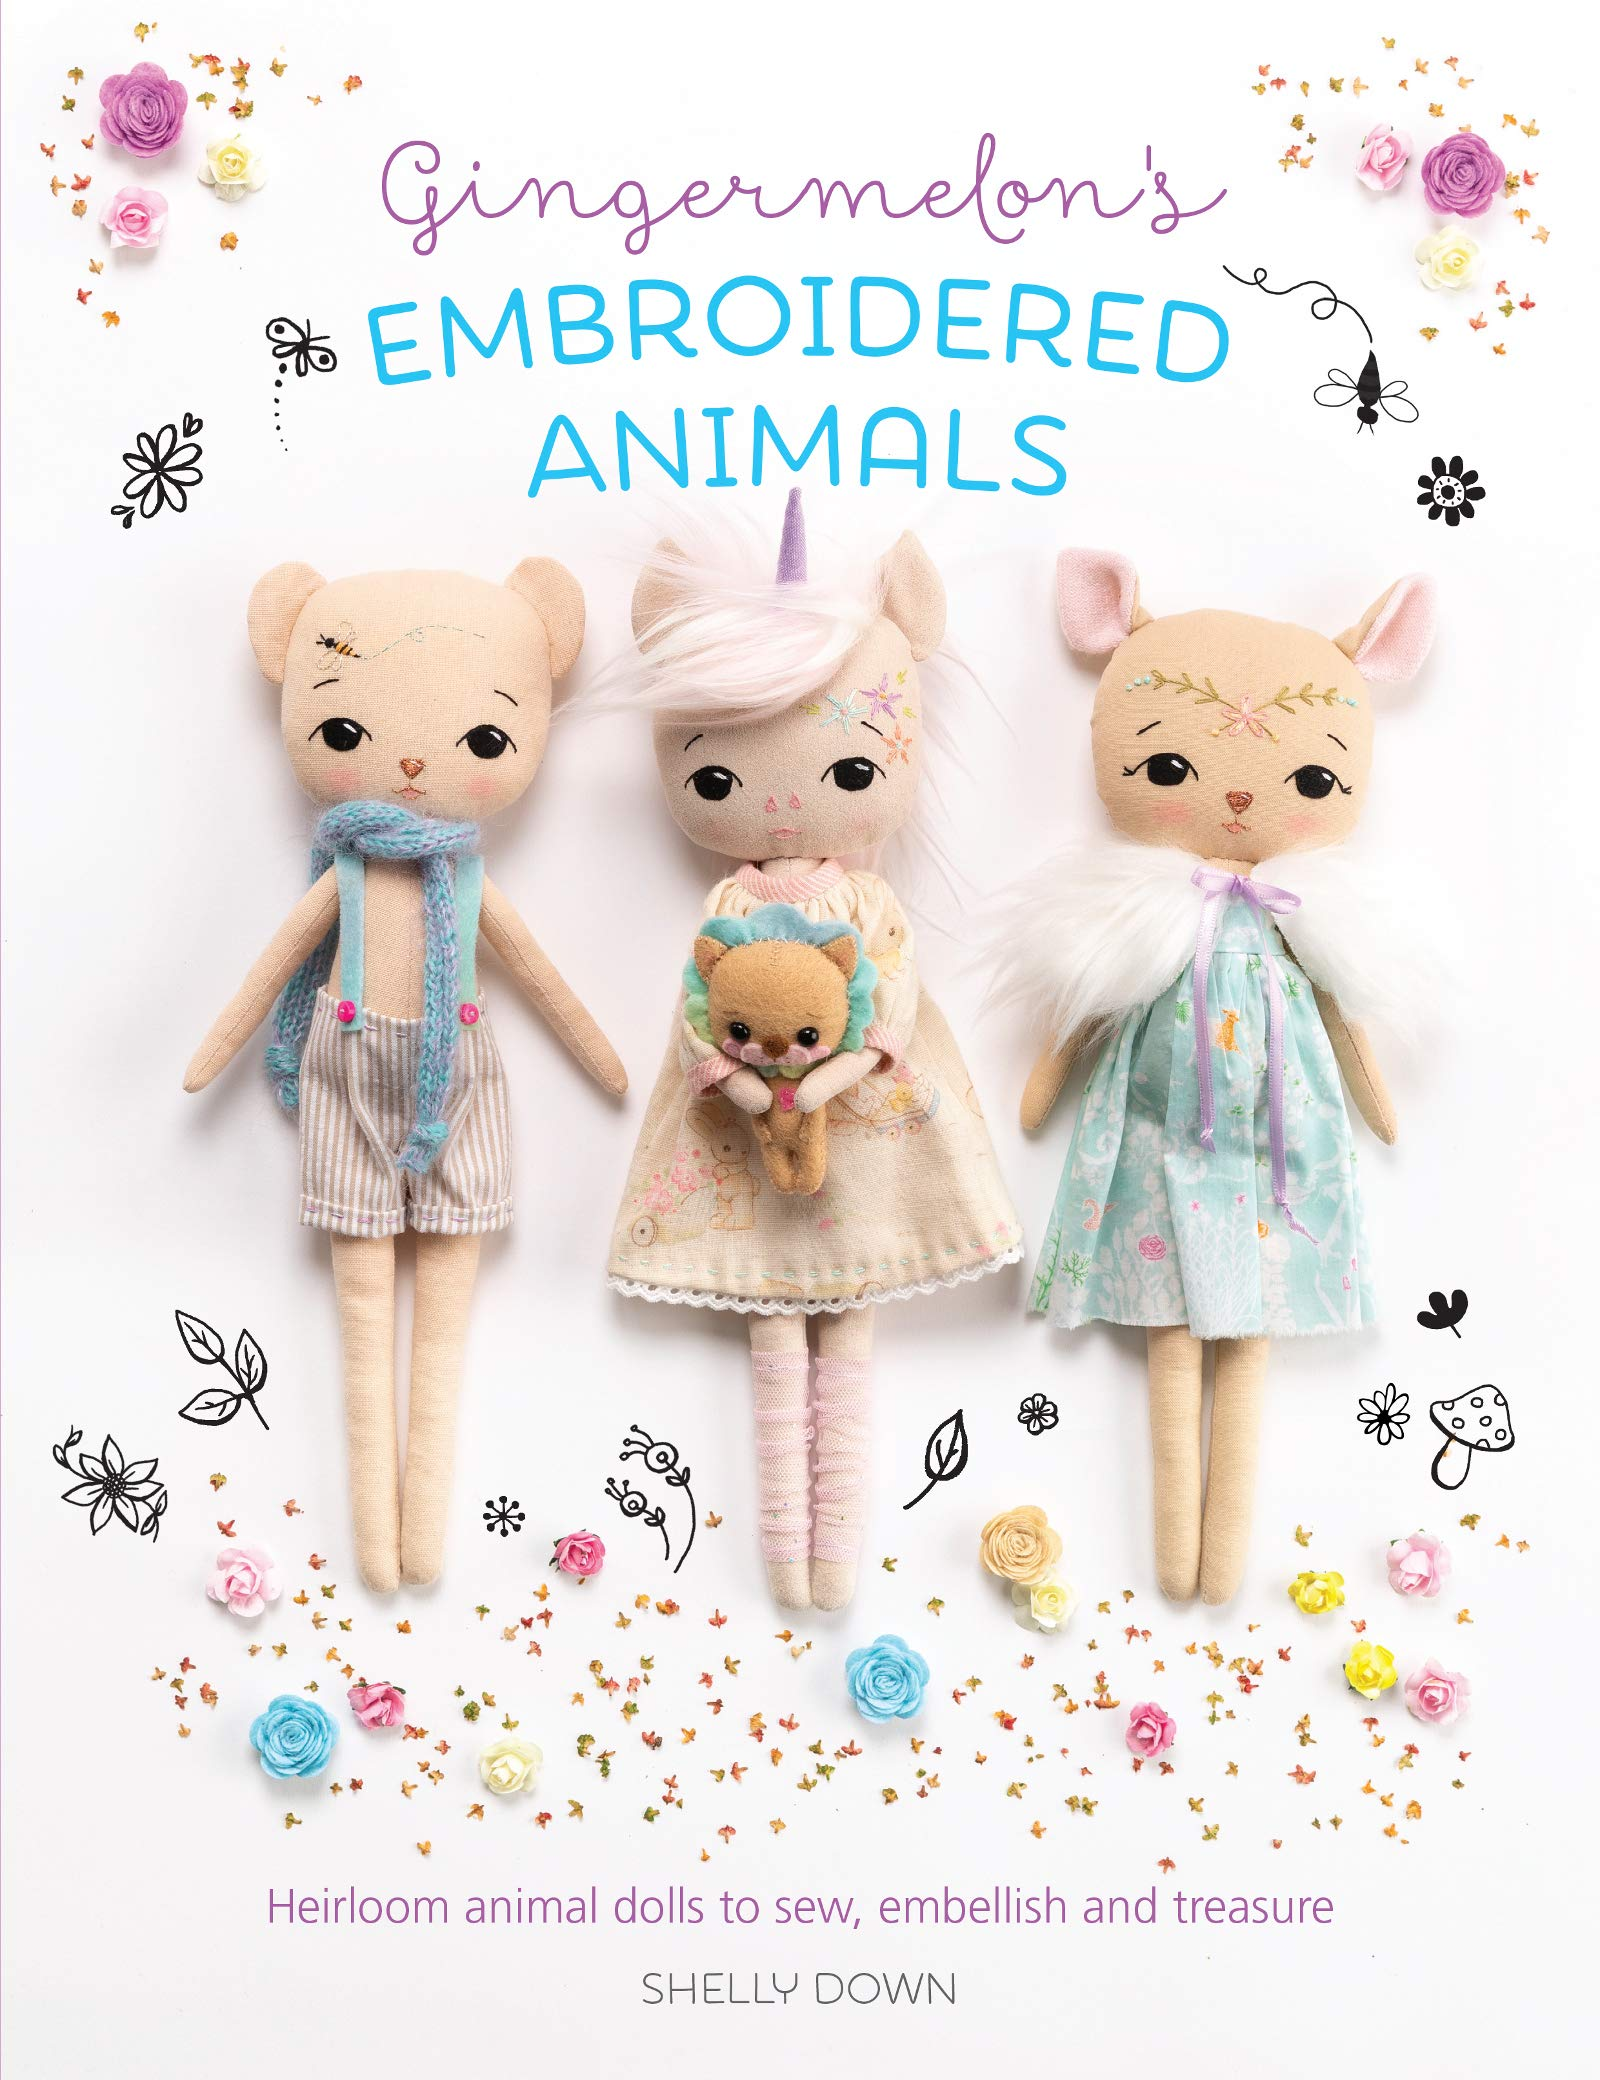 Gingermelon's Embroidered Animals  Heirloom Dolls To Sew Embellish And Treasure